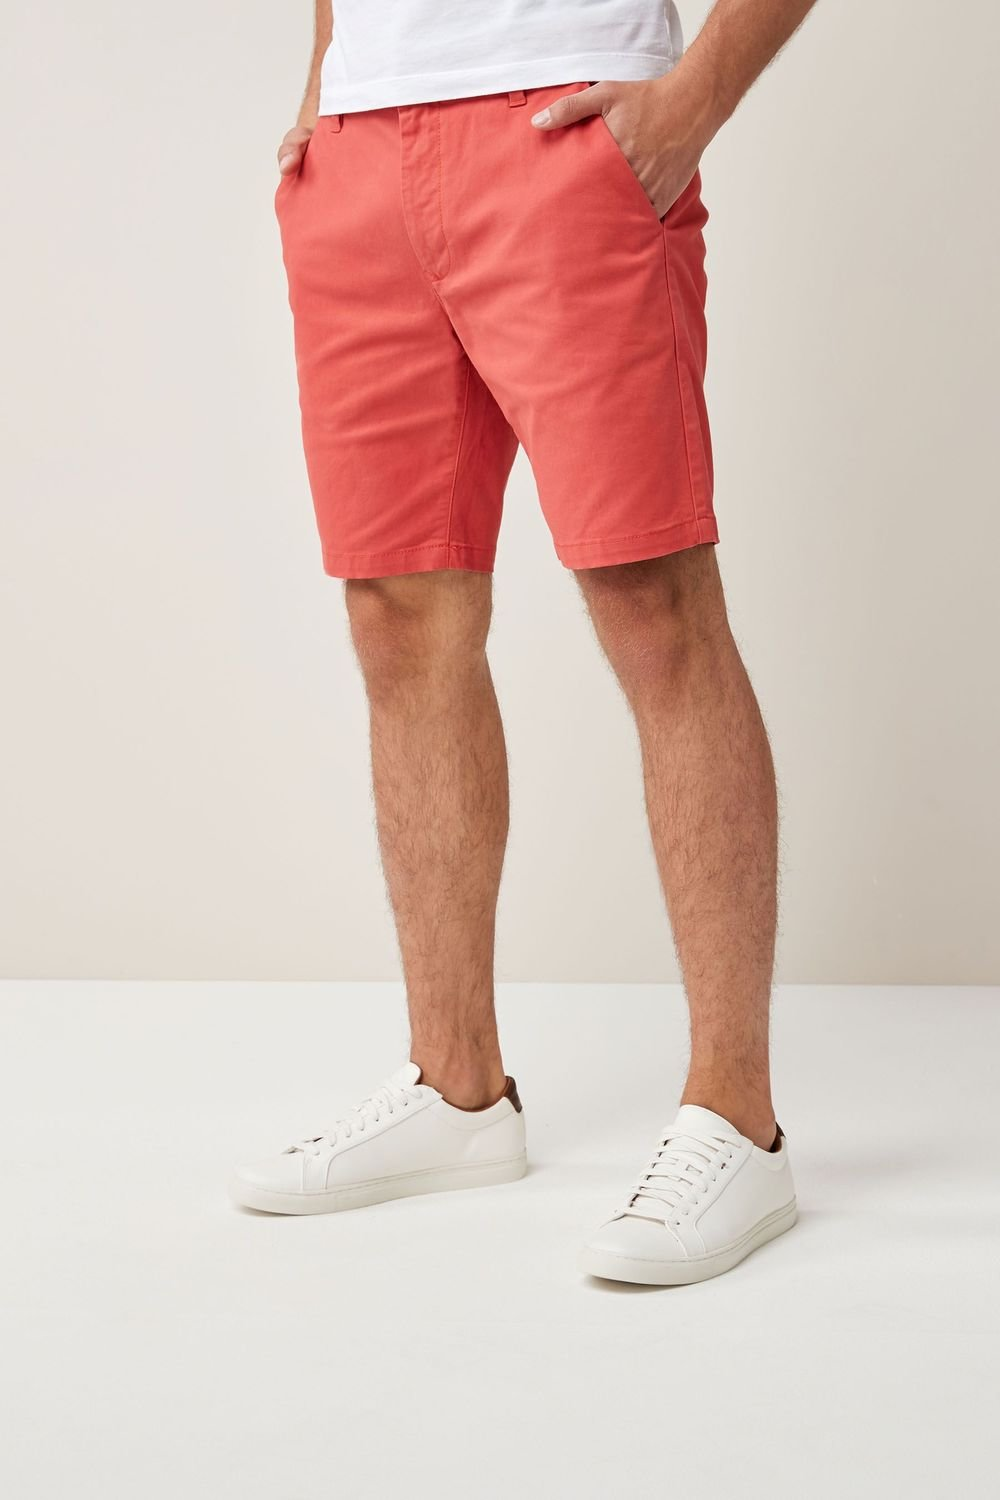 030e42f082 Next Slim Stretch Chino Shorts Online | Shop EziBuy